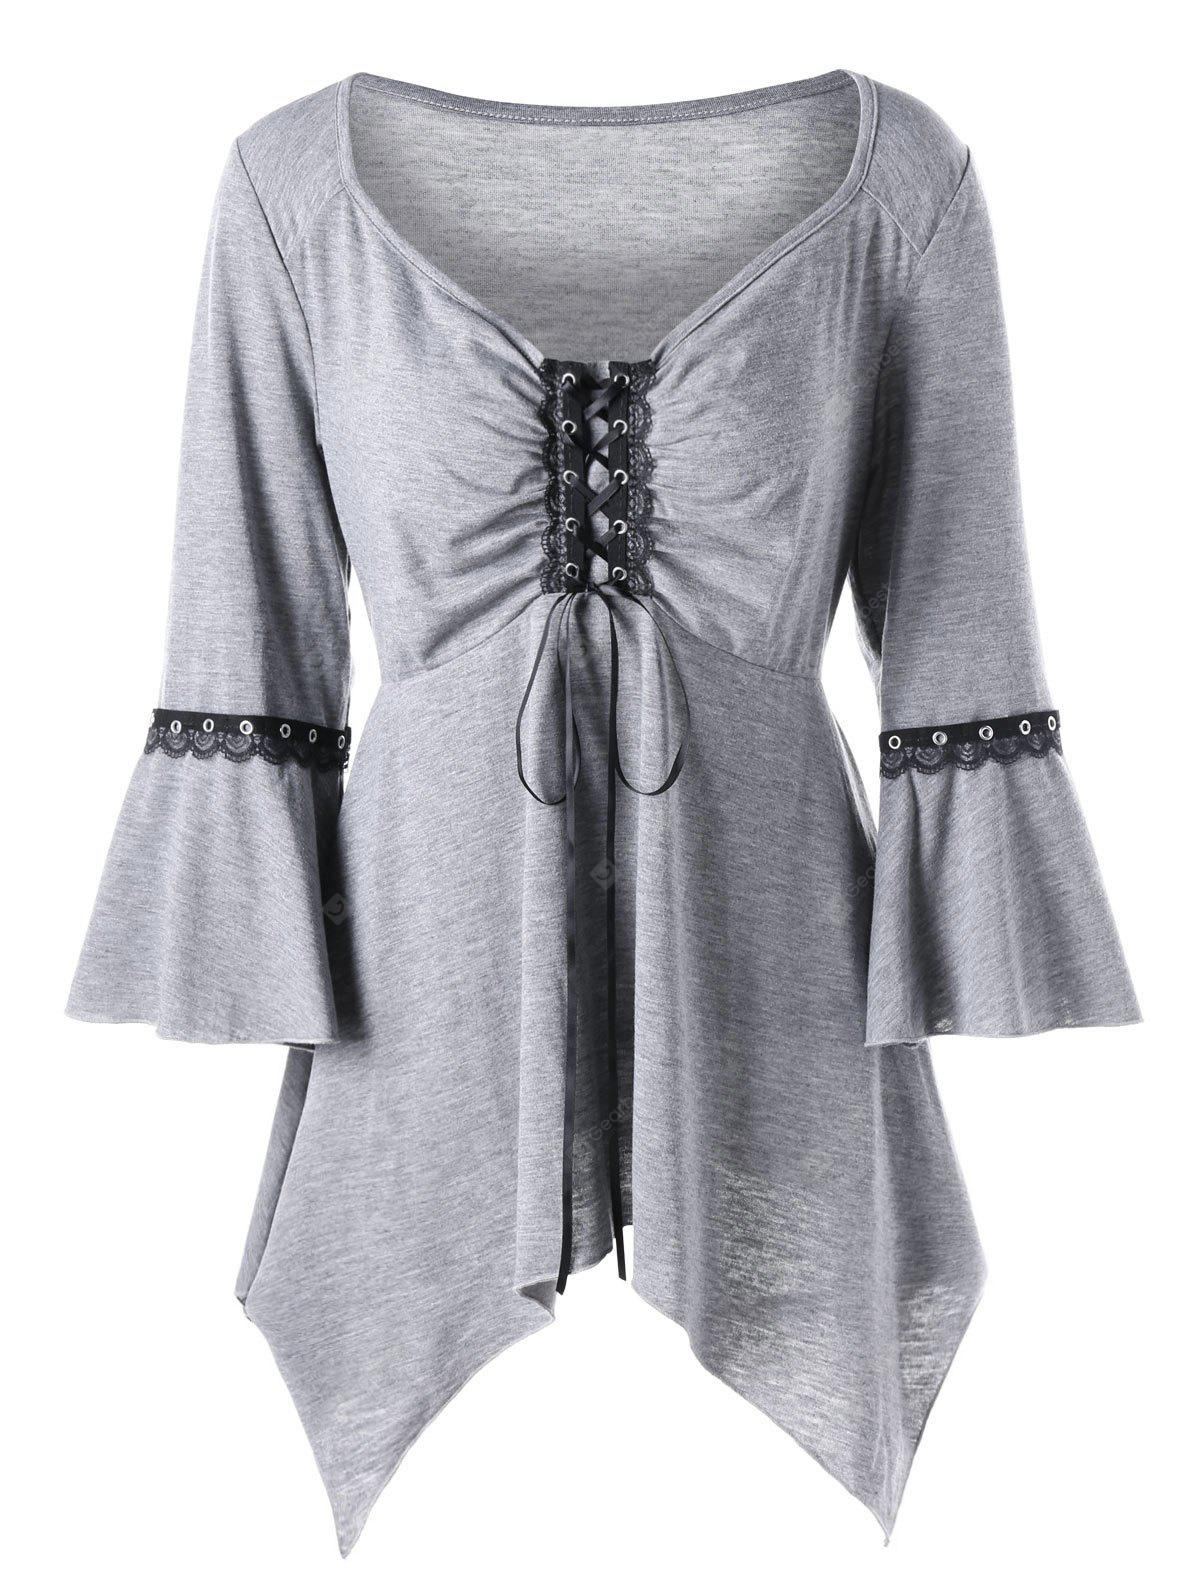 Plus Size Flare Sleeve Lace Up Top